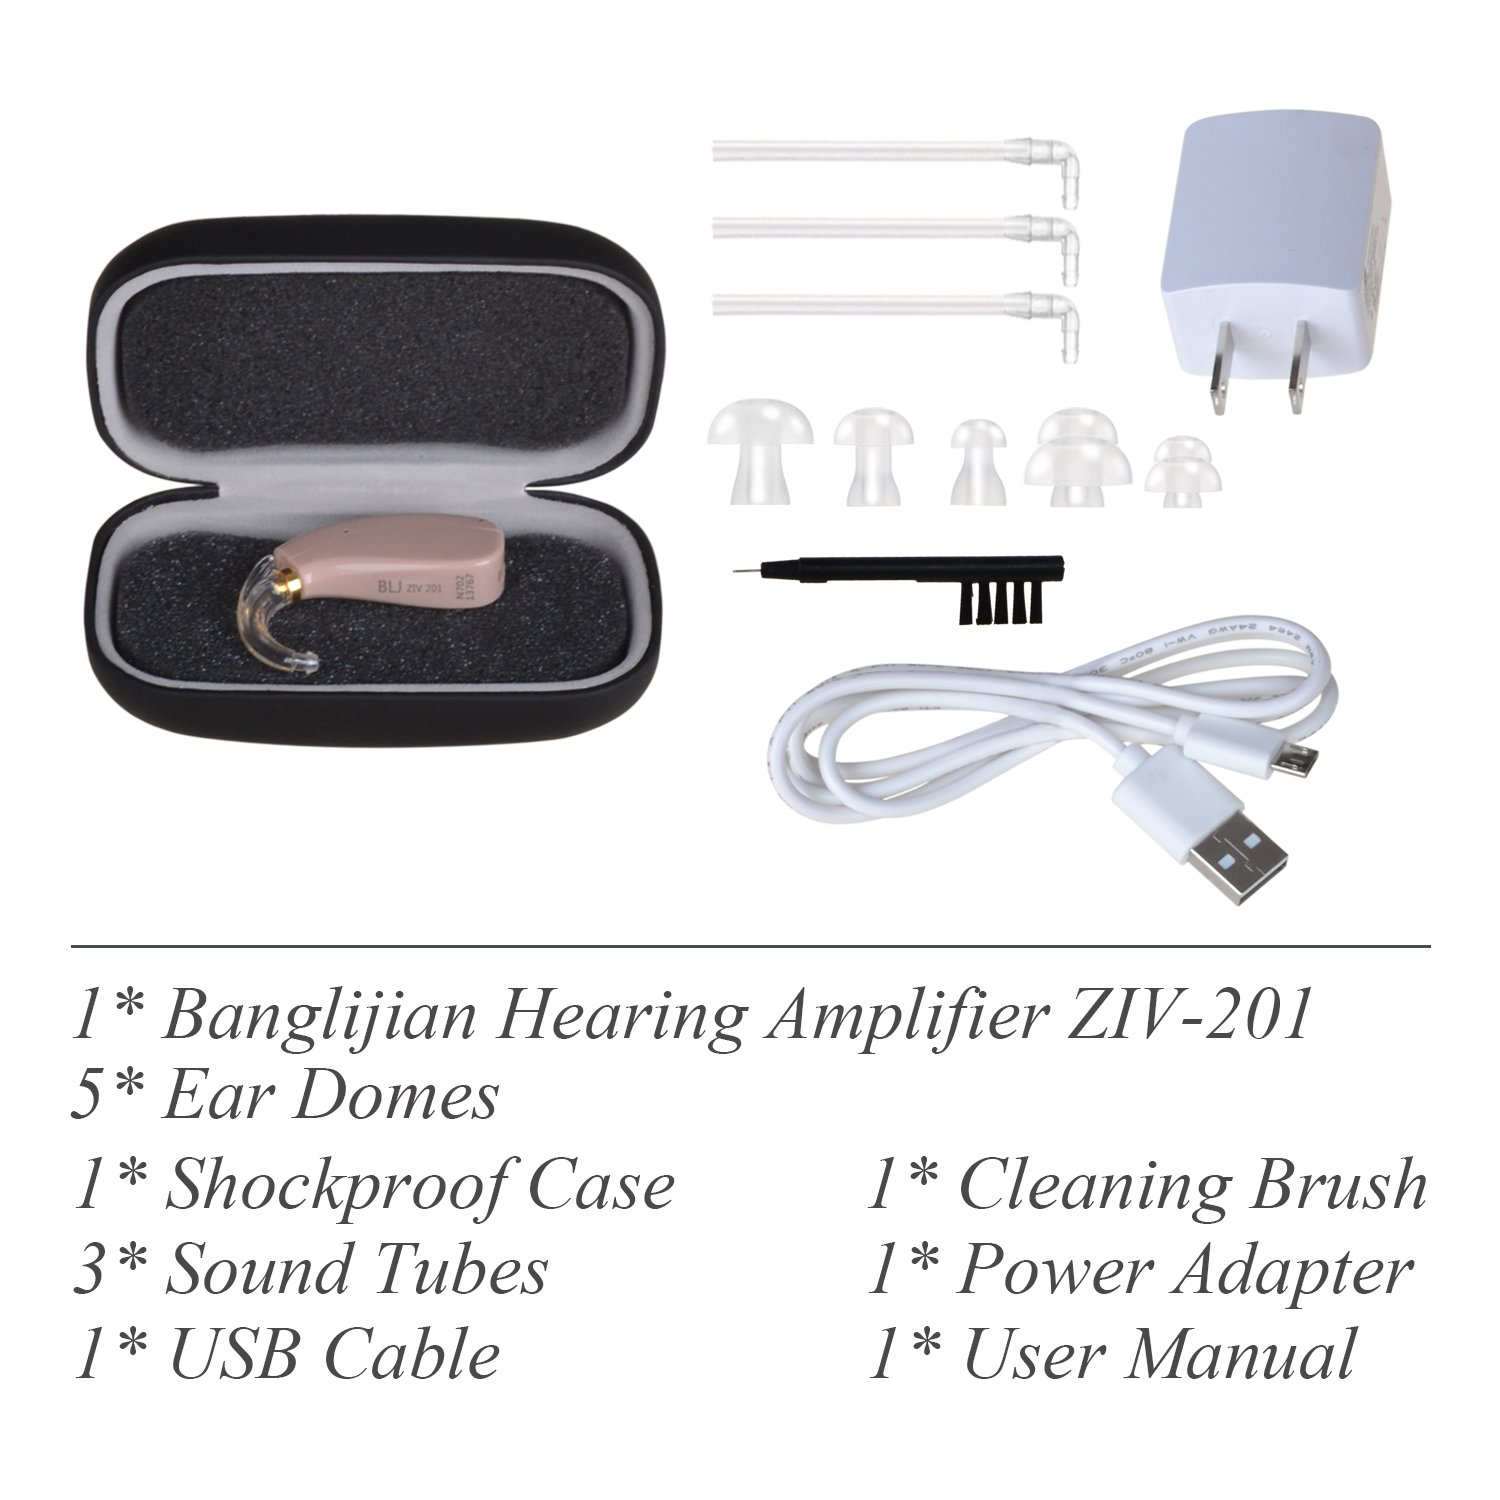 Banglijian Hearing Amplifier Rechargeable Ziv 201 High Living Aids Amplifiers Accessories Quality Digital Bte Small Size Health Personal Care